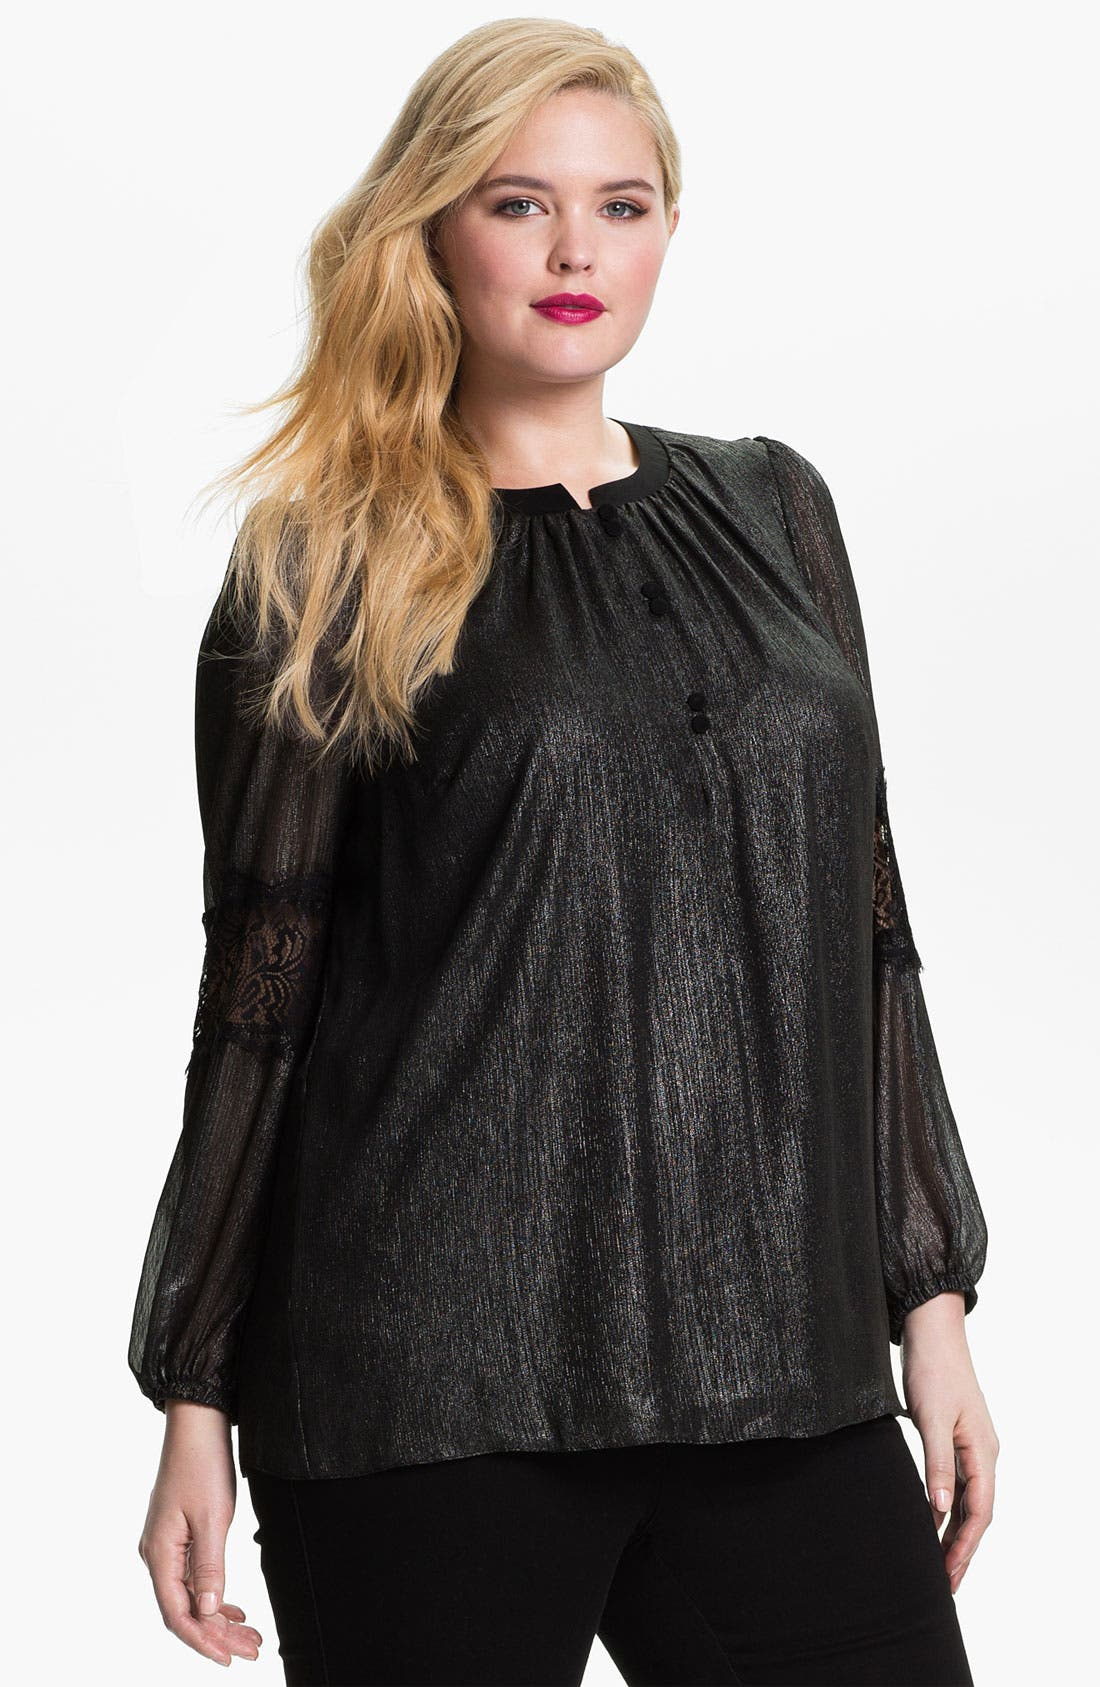 Alternate Image 1 Selected - Evans 'Kimmy' Metallic Blouse (Plus Size)